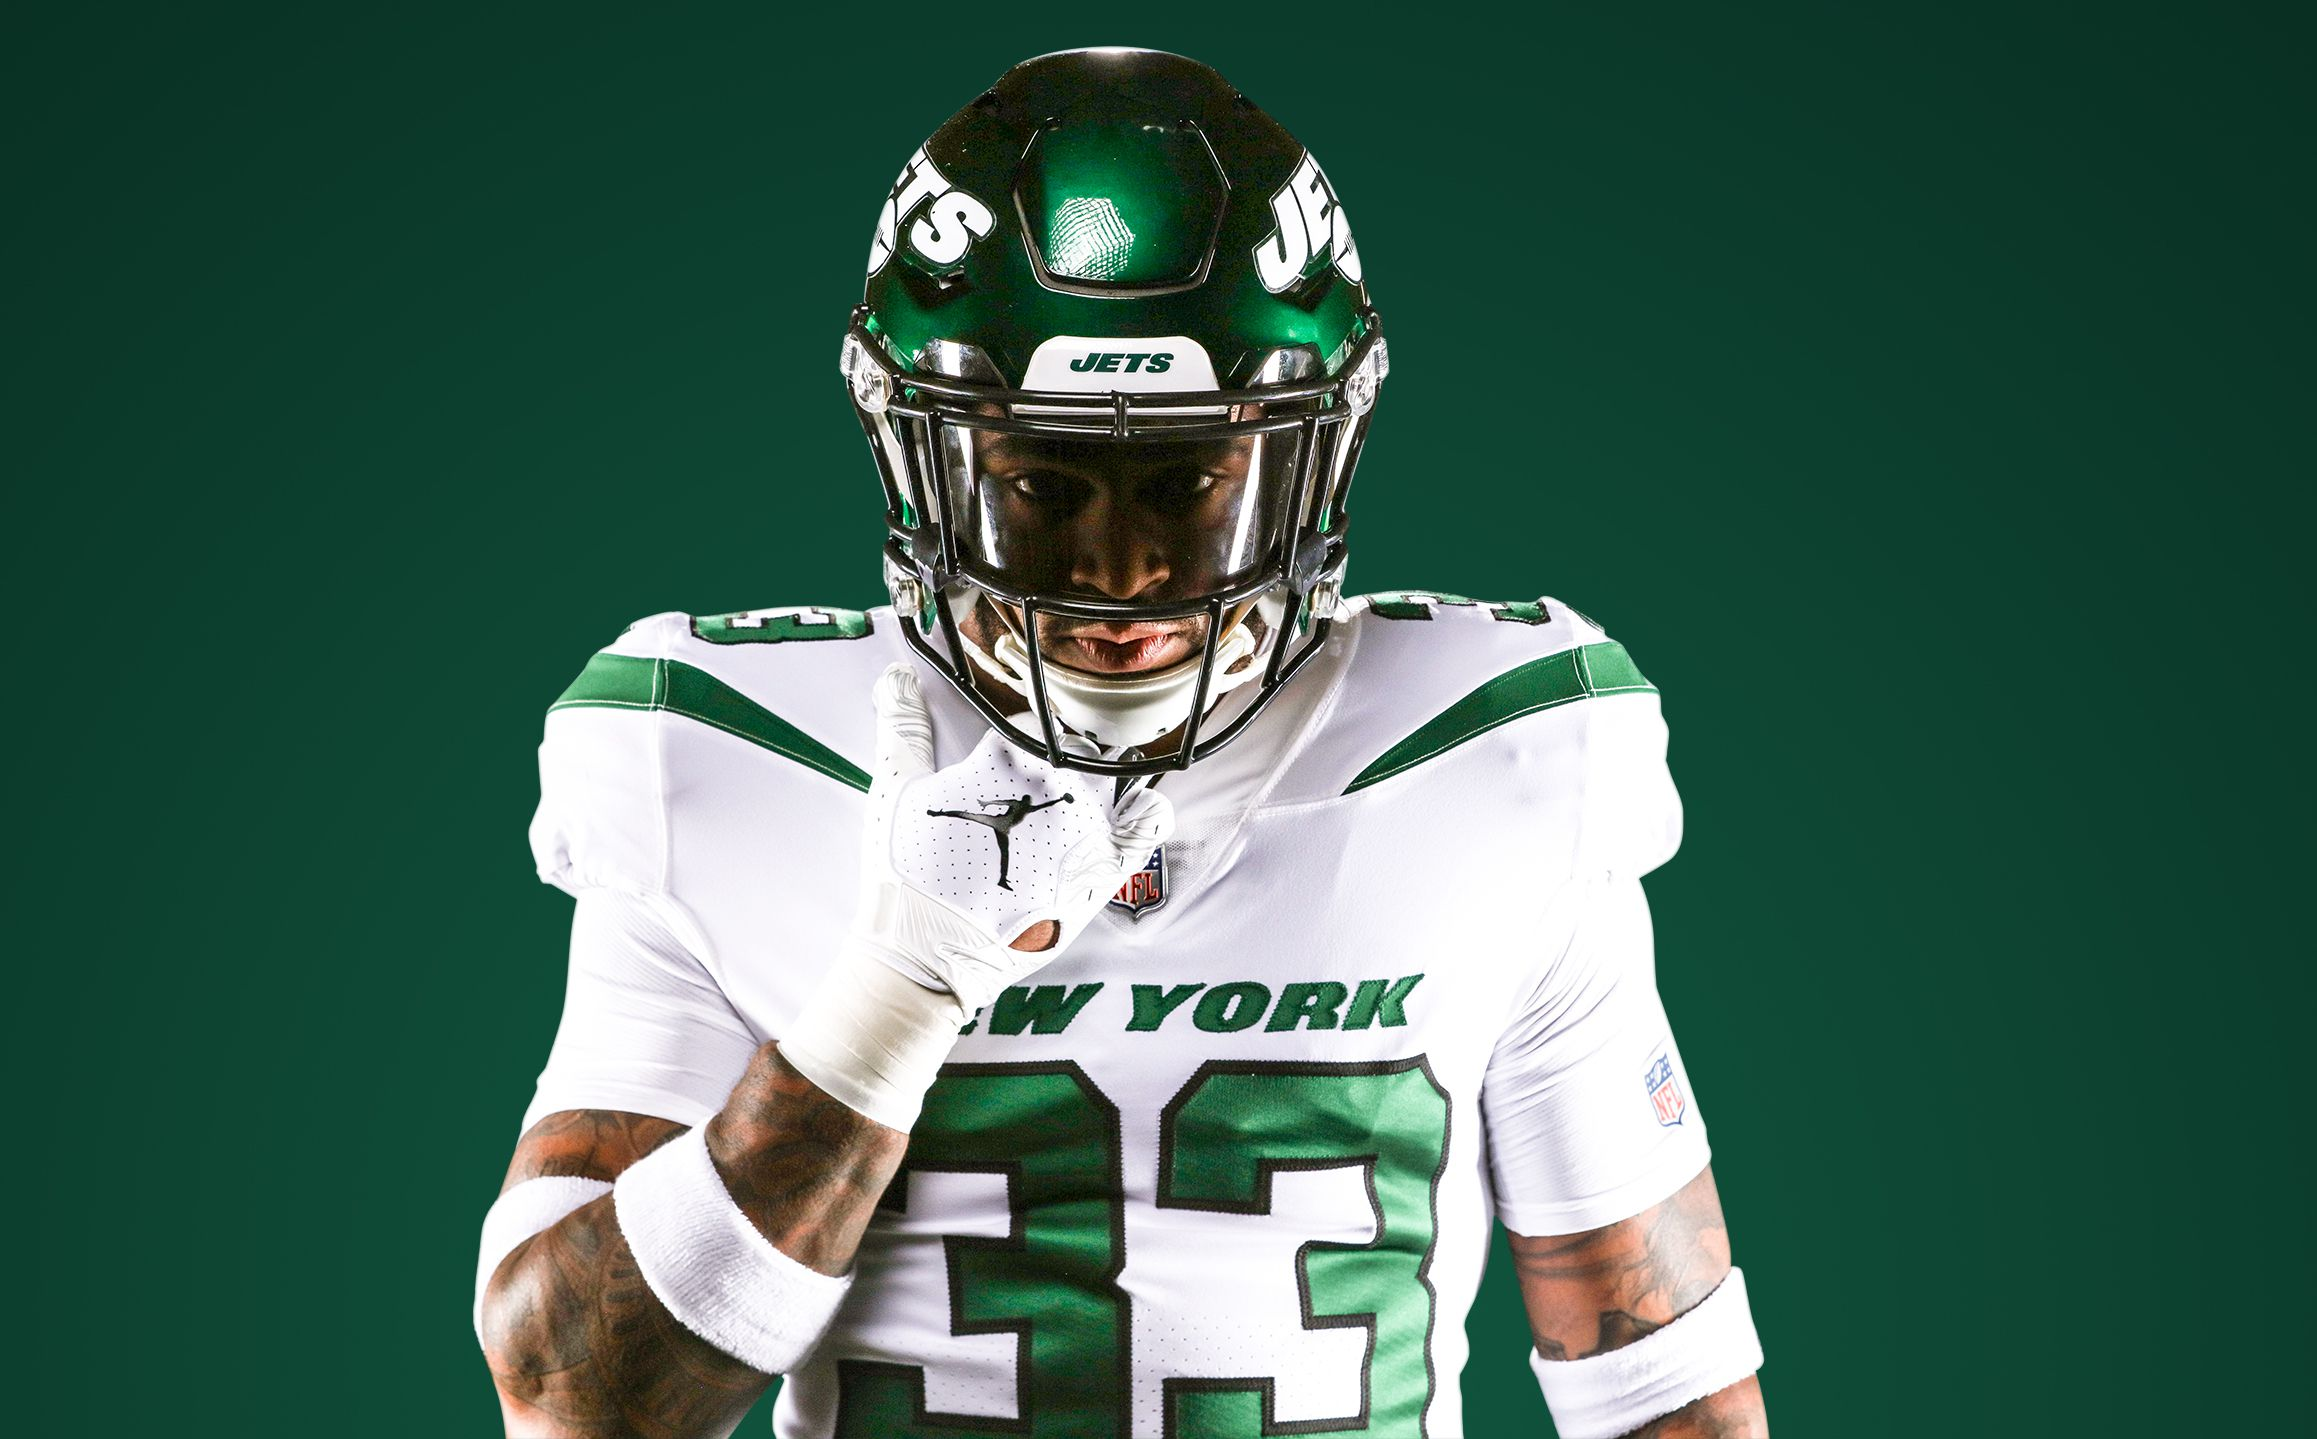 Nfl Rumors Jamal Adams Future With Jets Could Be Ugly And Drawn Out According To League Insider Update Nj Com